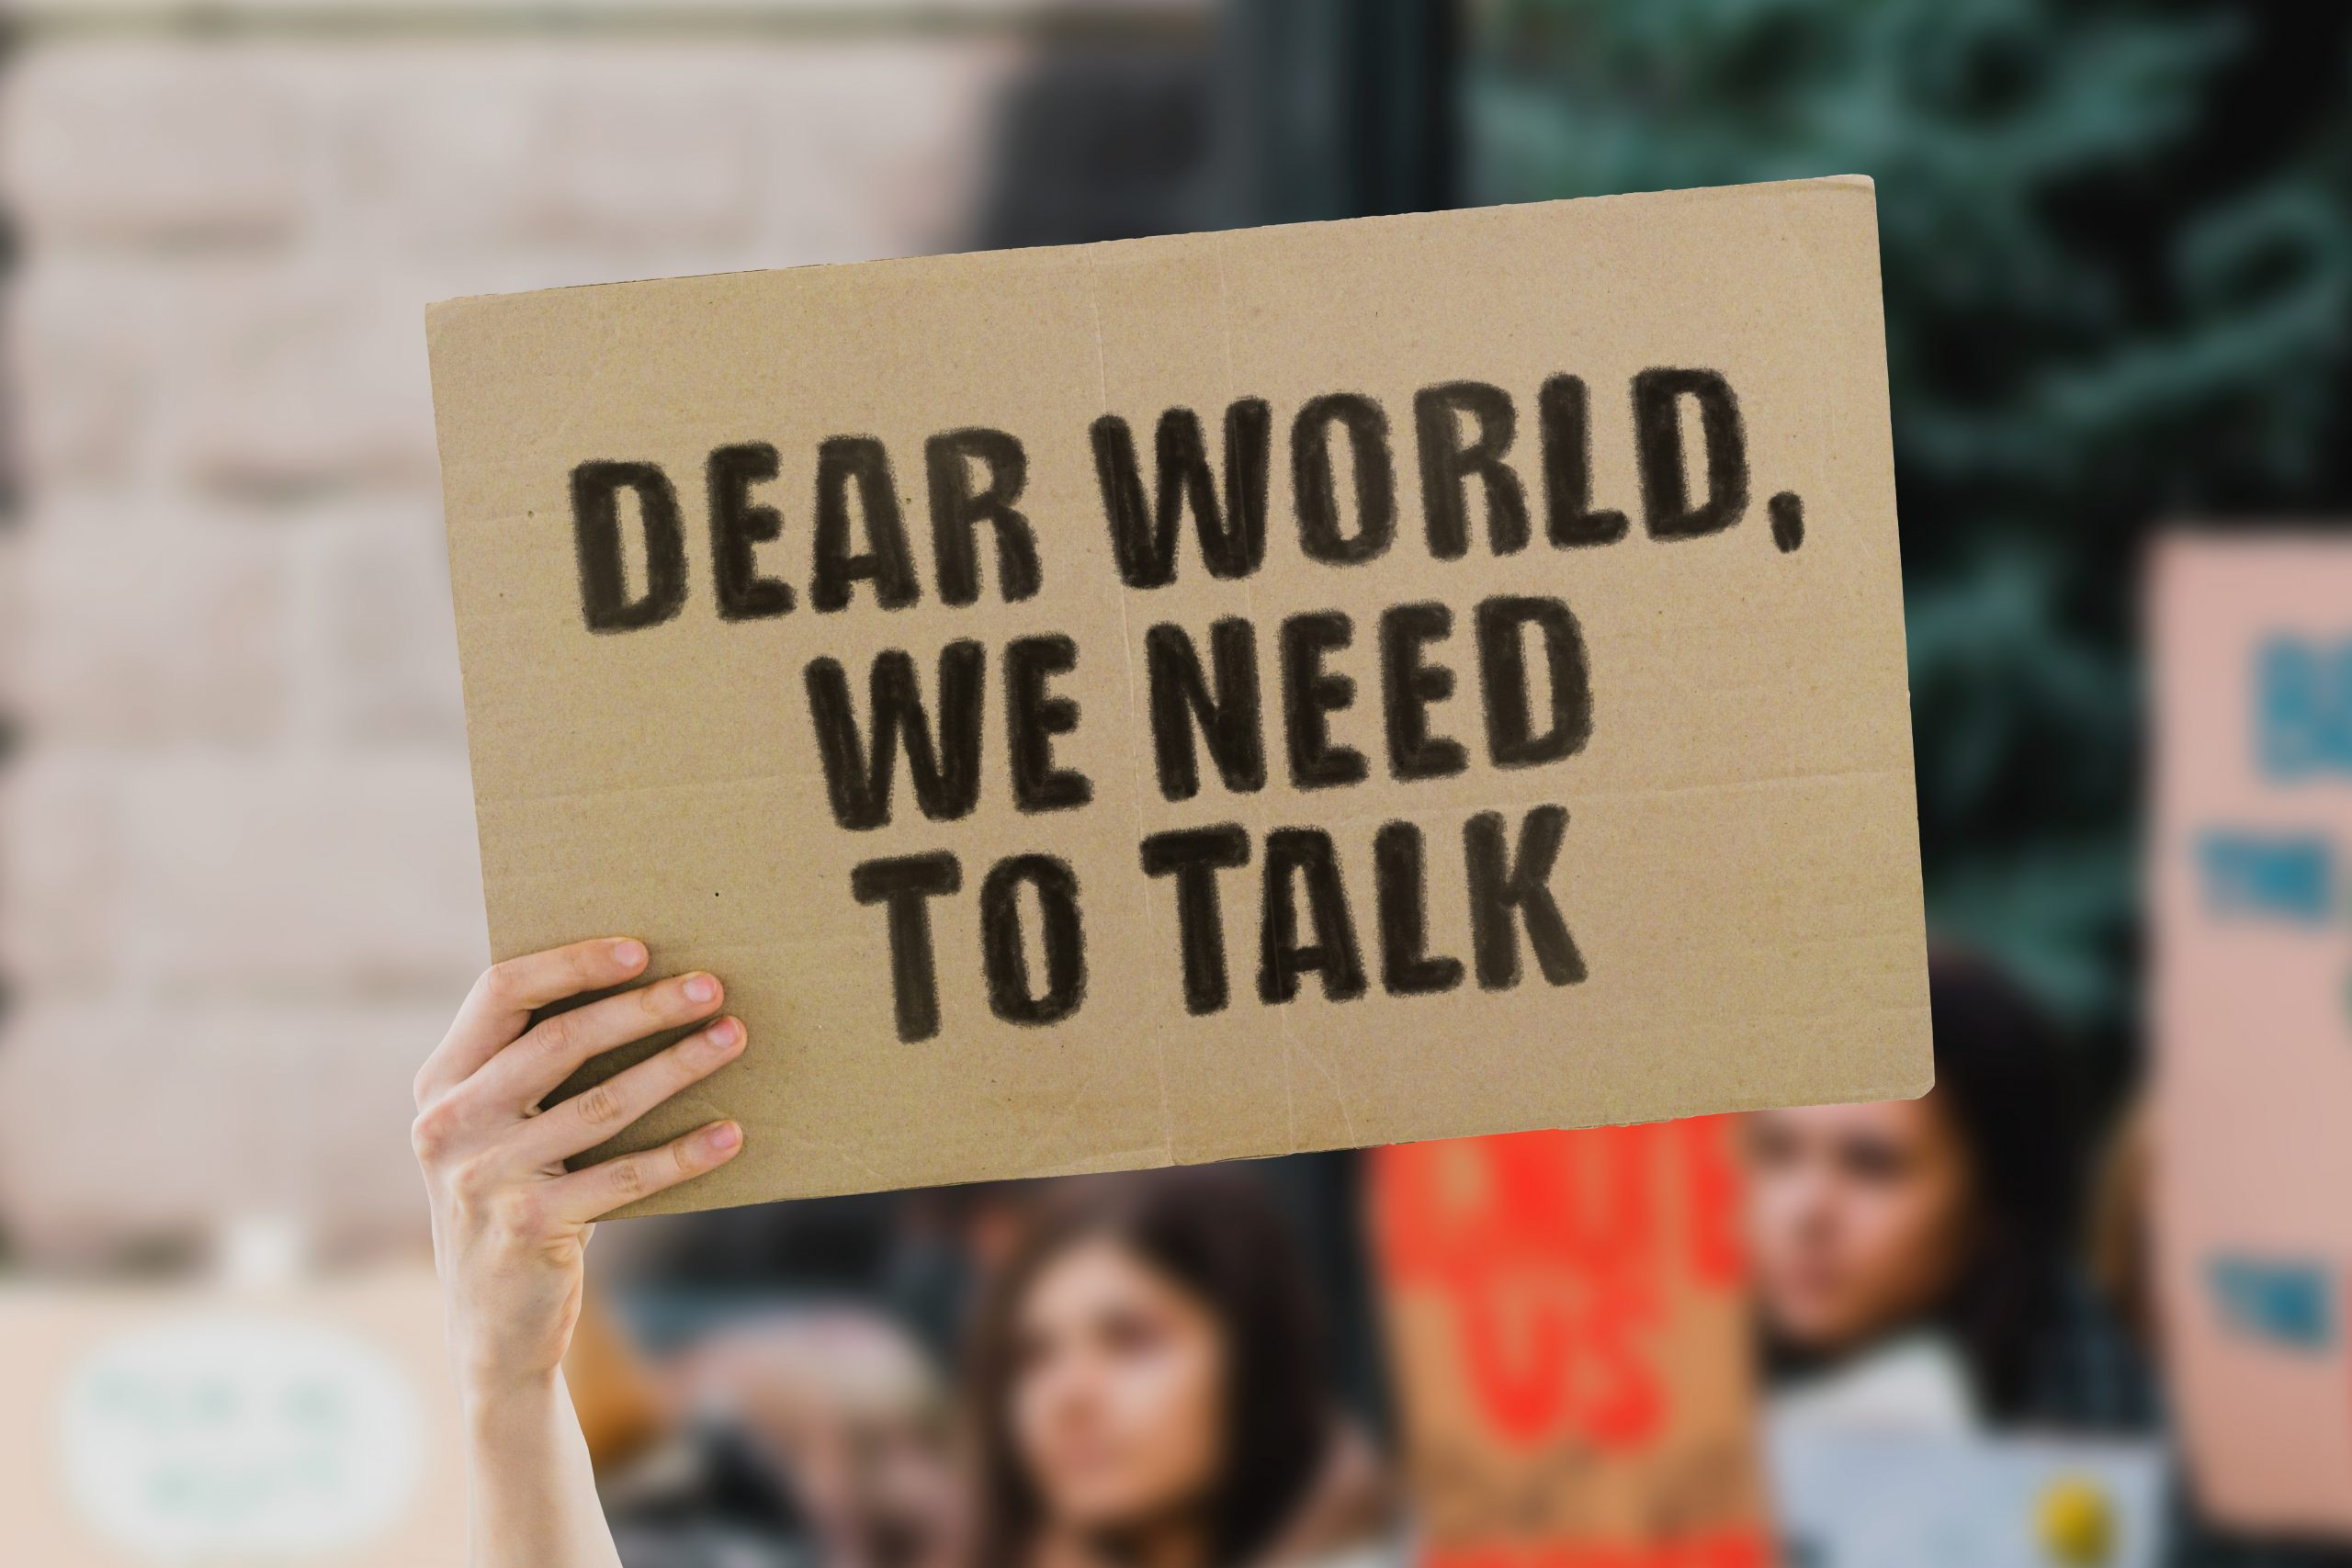 Protest Poster from Black Lives Matter: Dear world, we need to talk